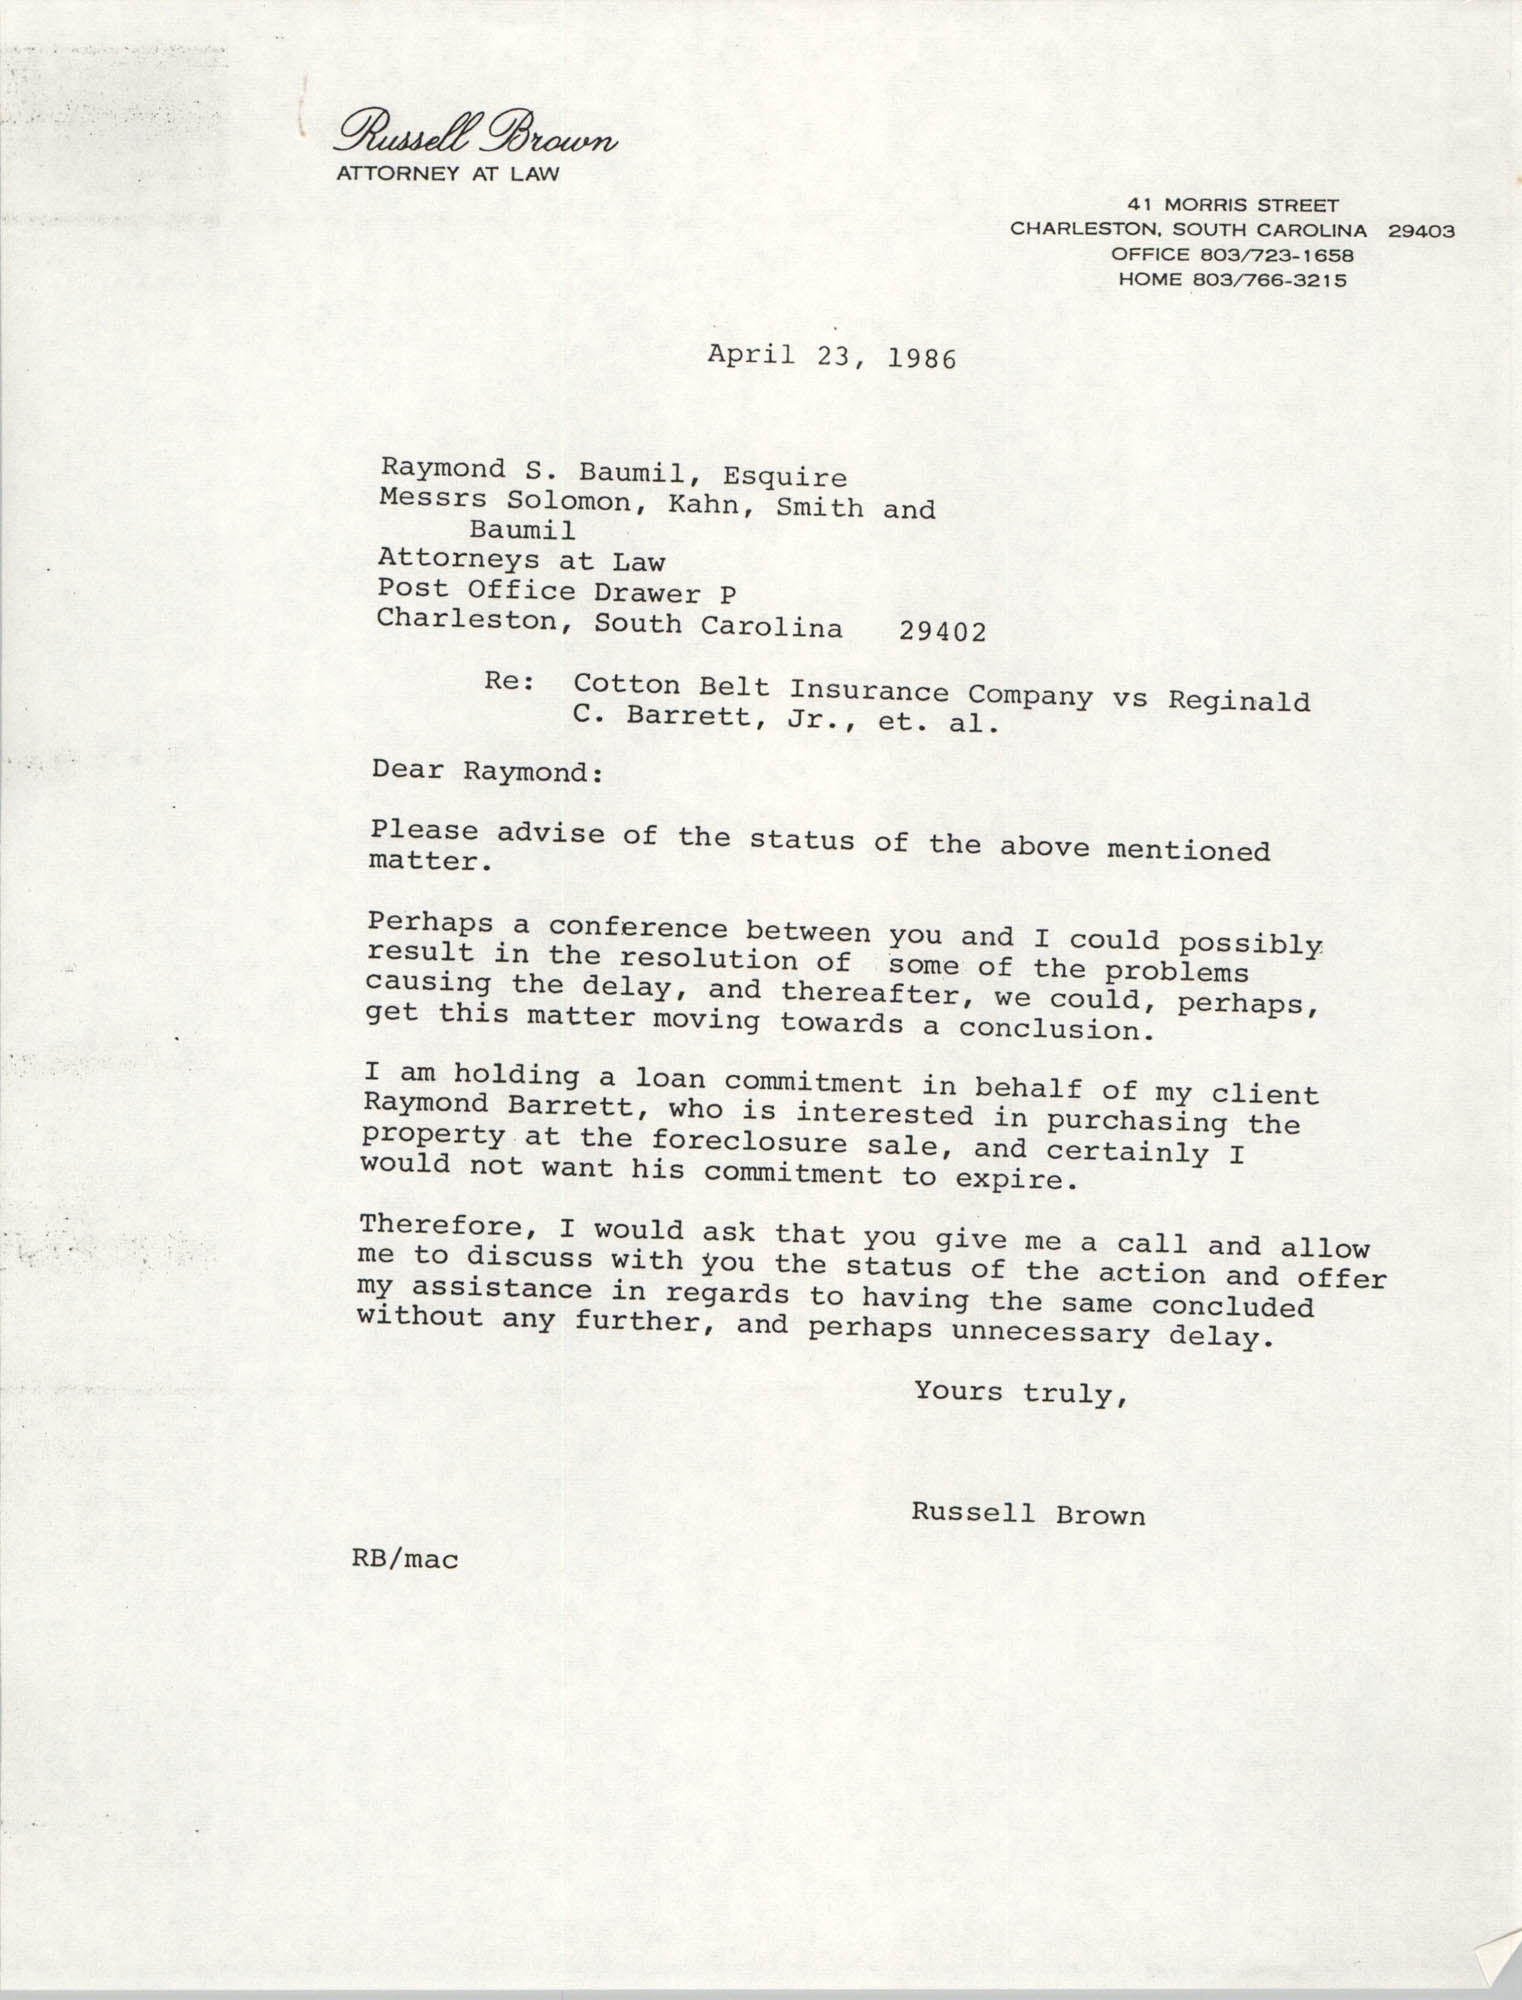 Letter from Russell Brown to Raymond S. Baumil, April 23, 1986